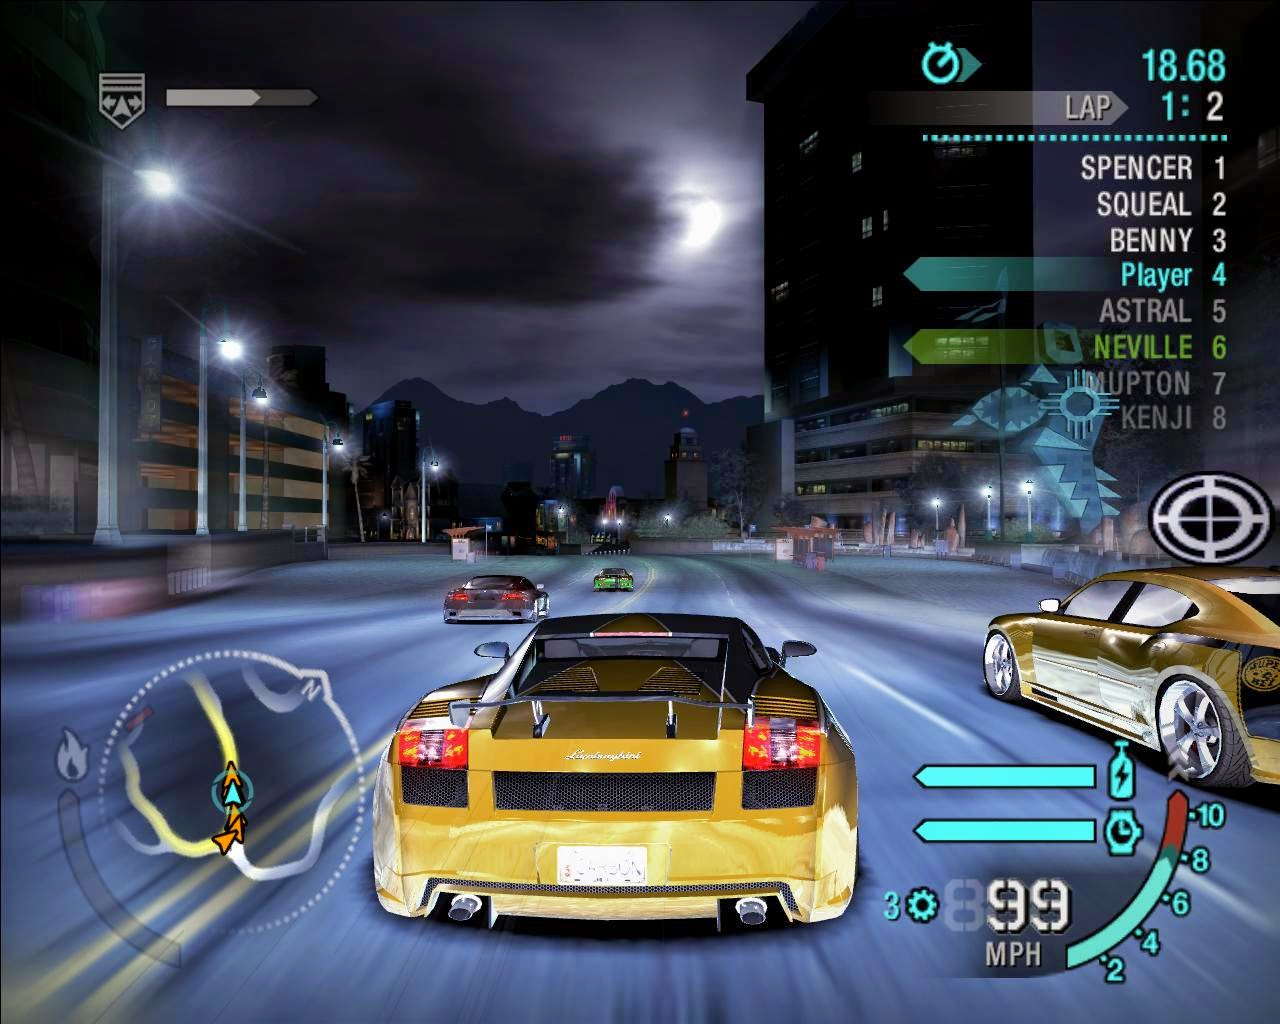 Need for Speed World [Free PC Download] - Free Games